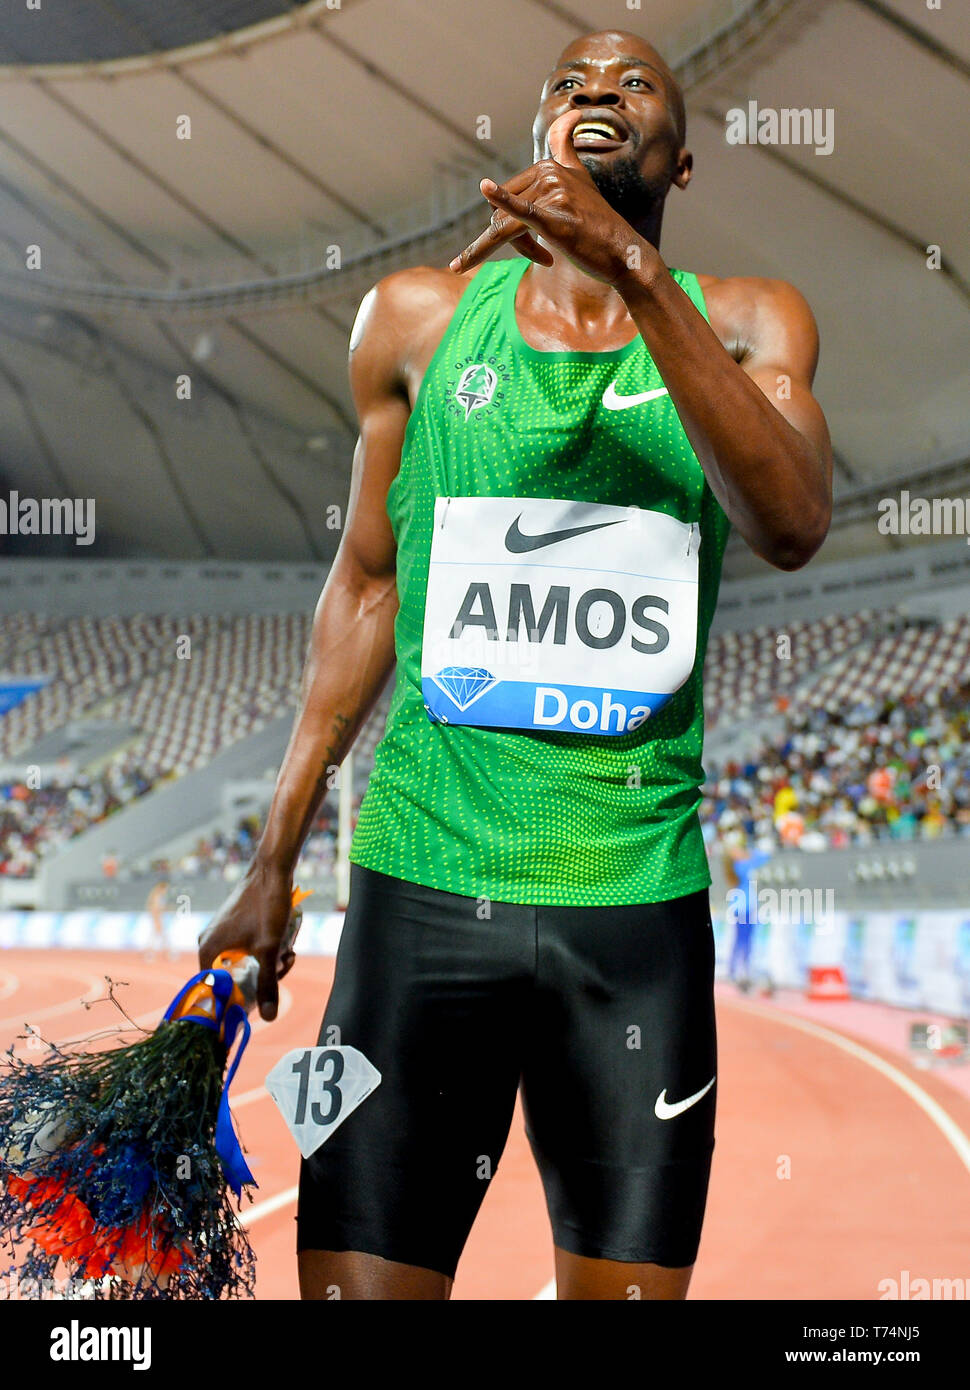 Doha, Qatar. 3rd May, 2019. Nijel Amos of Botswana celebrates after the men's 800m final at 2019 IAAF Diamond League at Khalifa International Stadium in Doha, Qatar, May 3, 2019. Nijel Amos won the gold medal with 1 minute and 44.29 seconds. Credit: Nikku/Xinhua/Alamy Live News Stock Photo